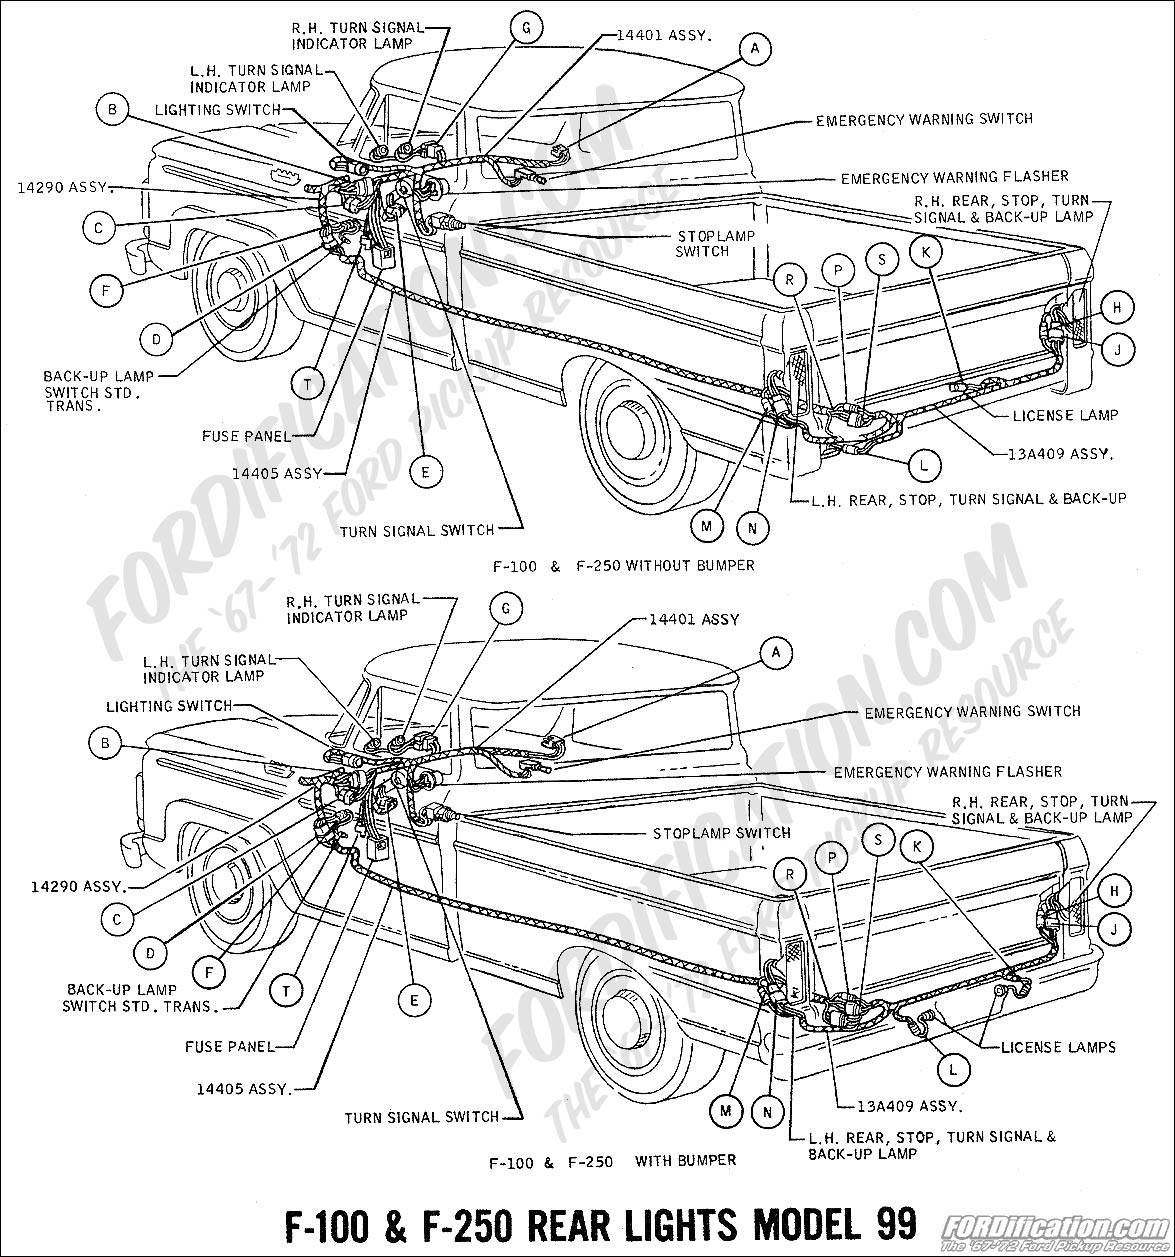 ford truck technical drawings and schematics section h wiring 1969 f 100 f 250 rear lights model 99 02